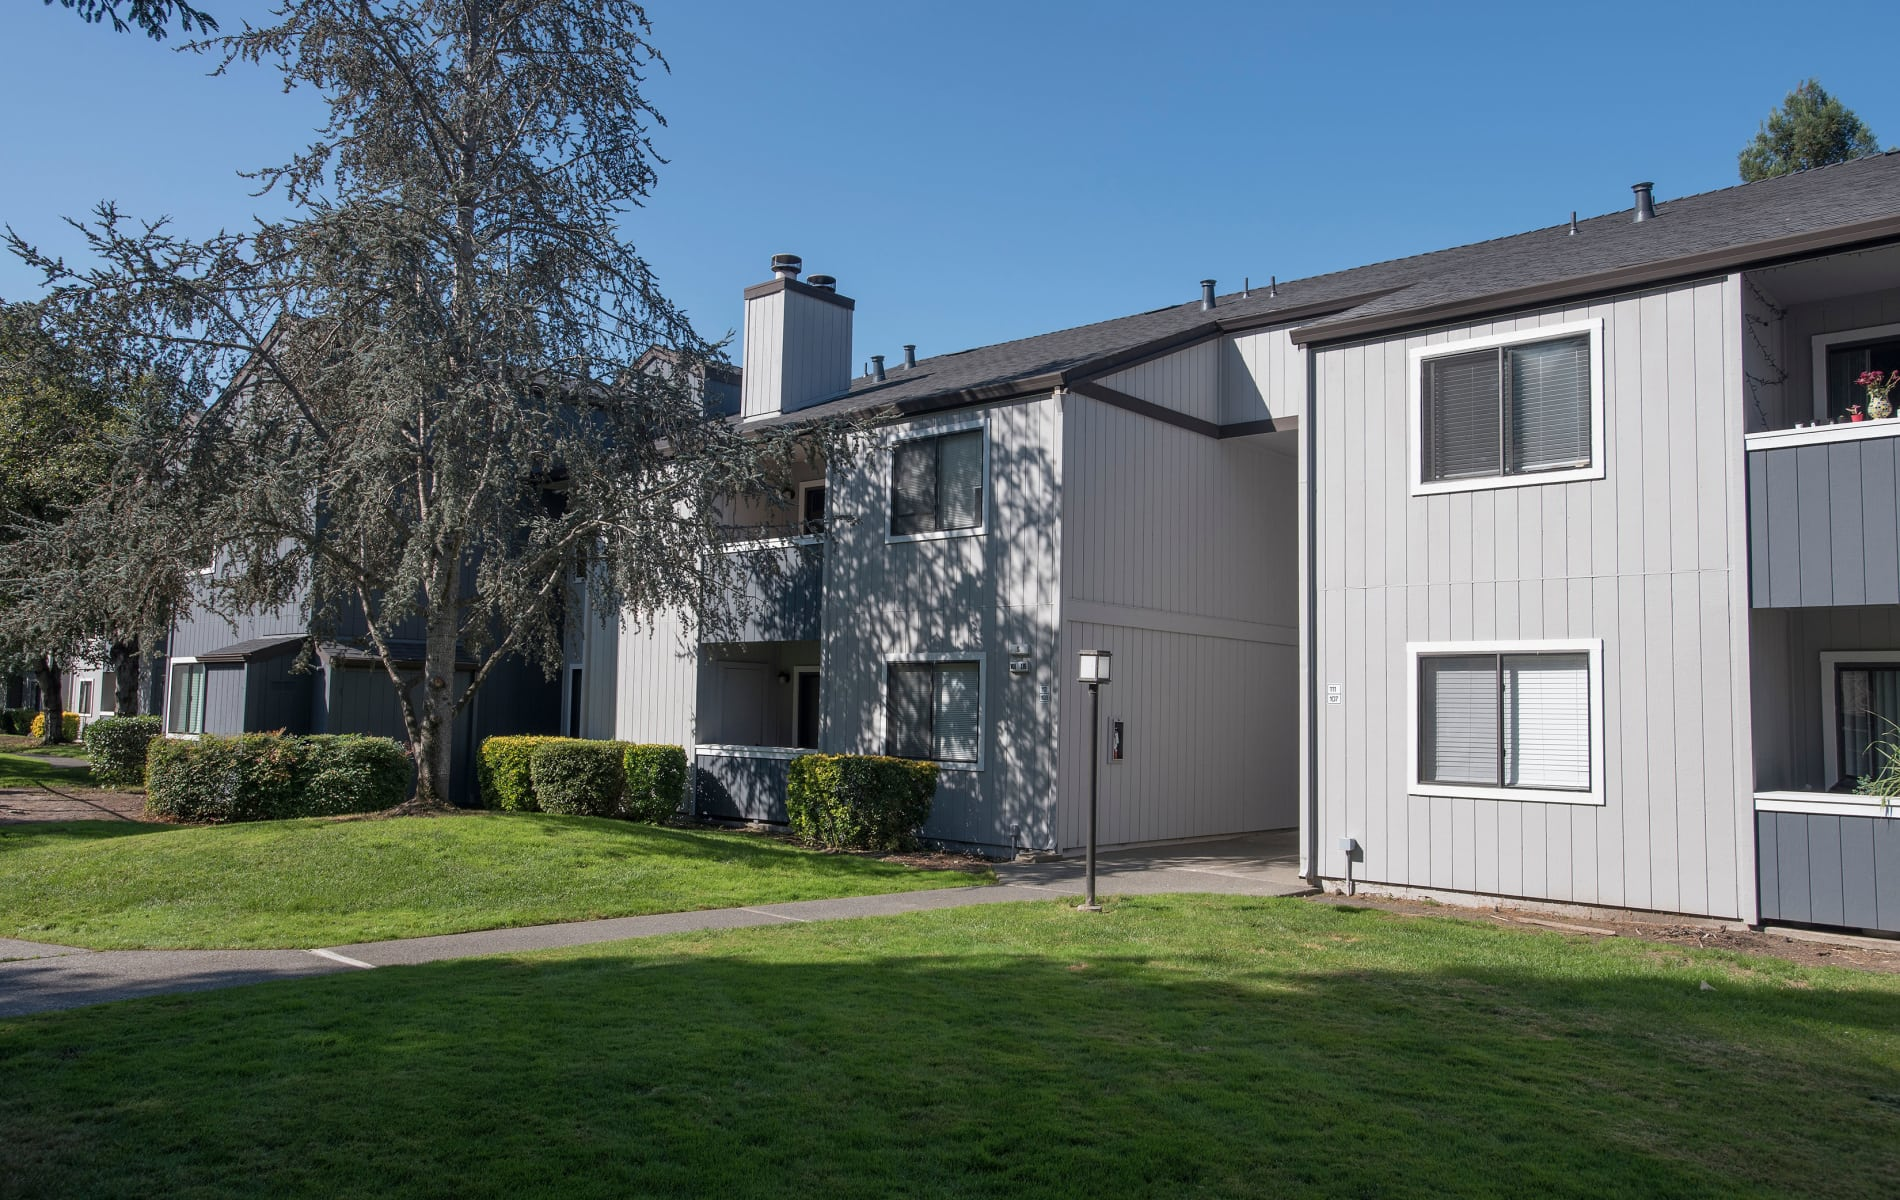 Apartments in Rohnert Park, CA